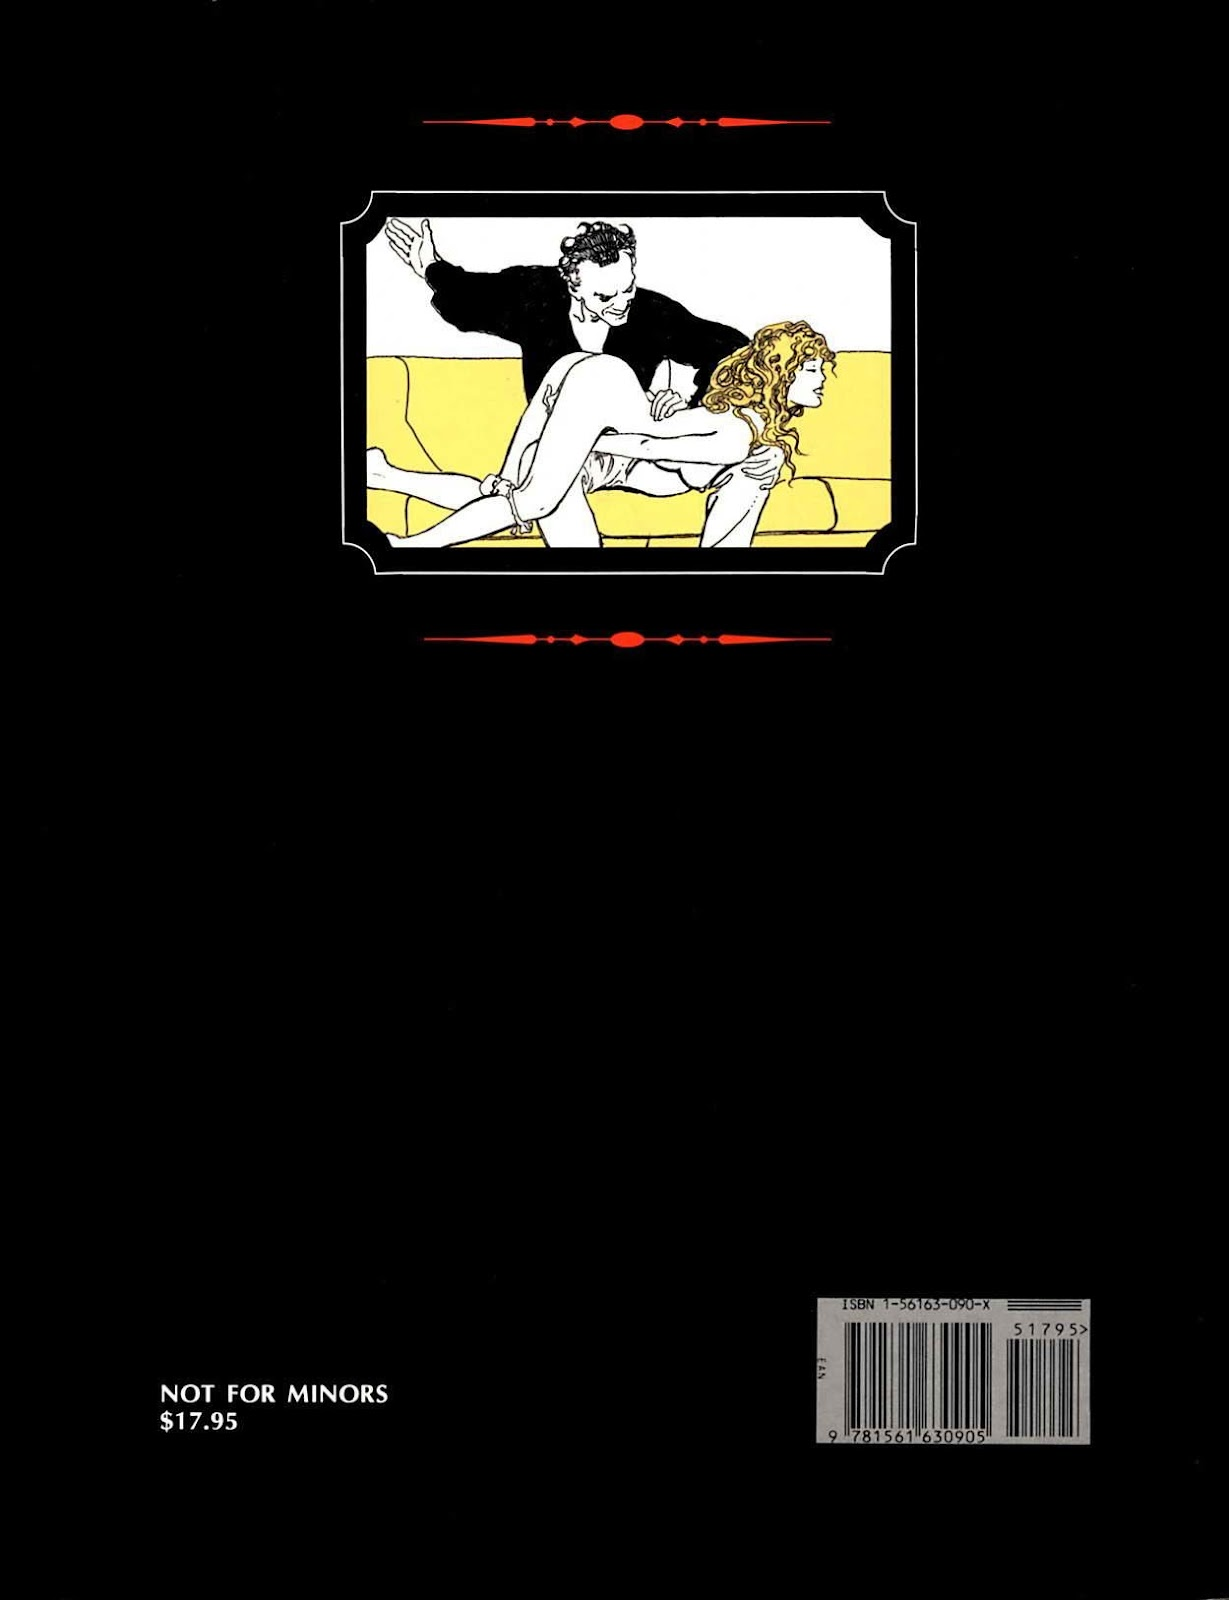 Read online The Art of Spanking comic -  Issue # TPB - 2